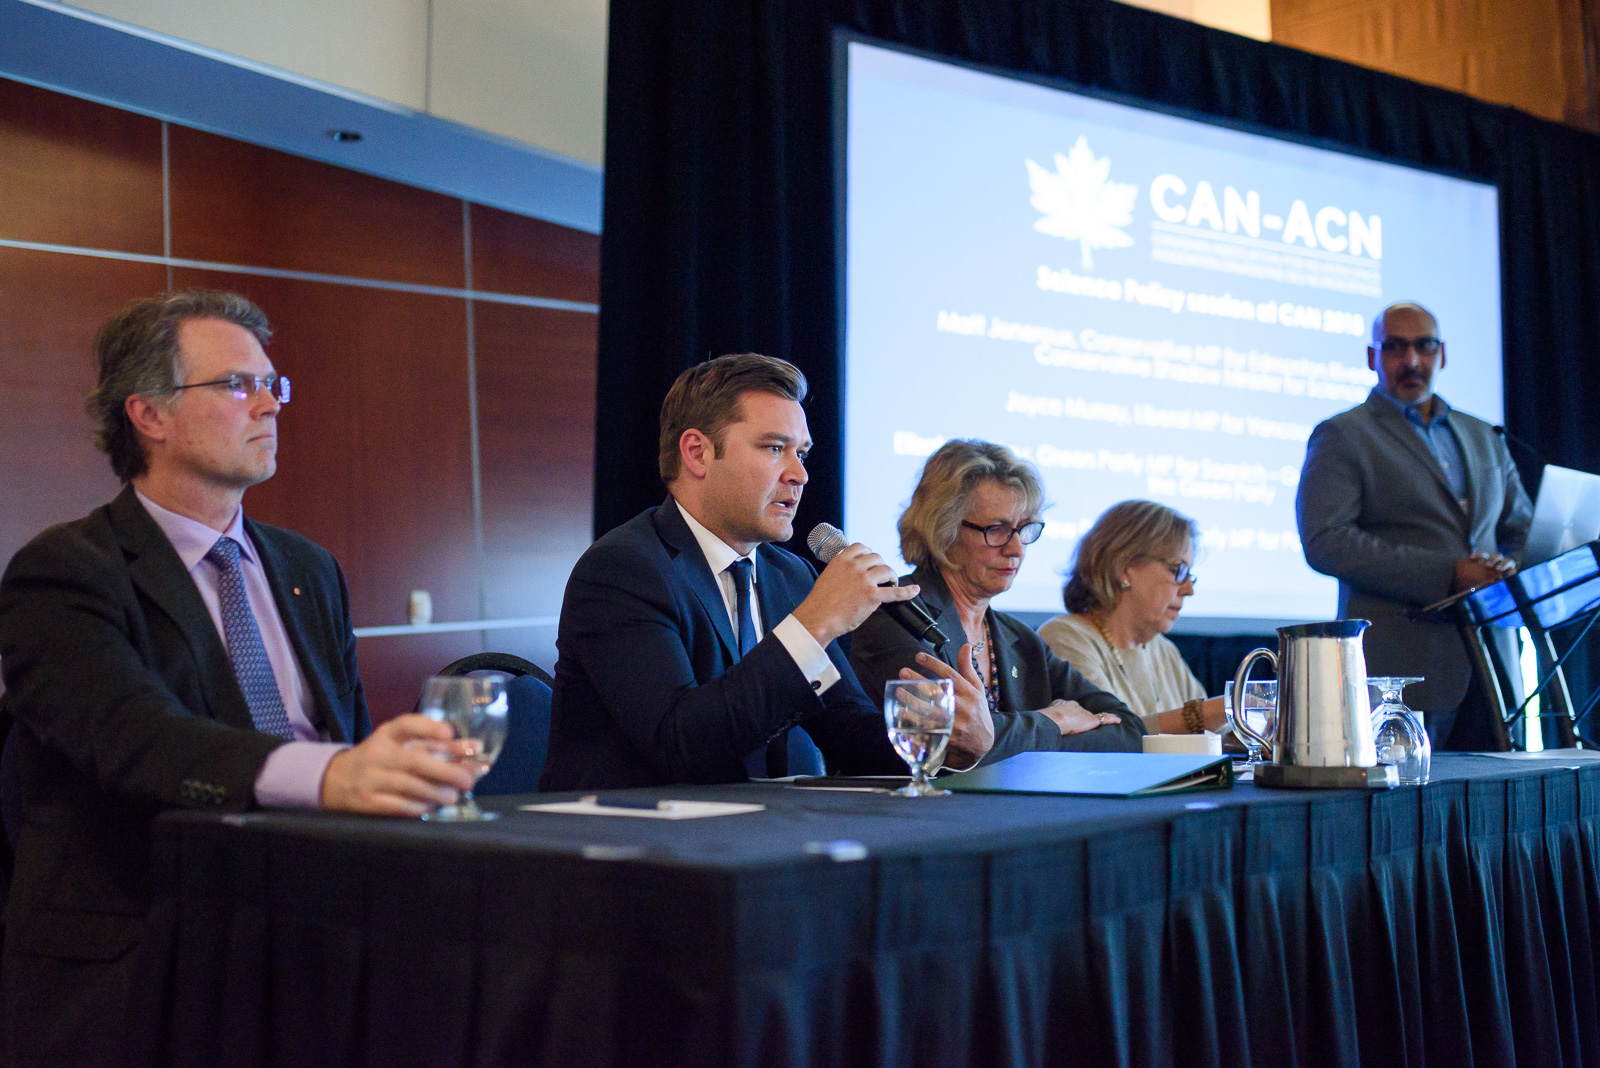 Canadian Association for Neuroscience panel